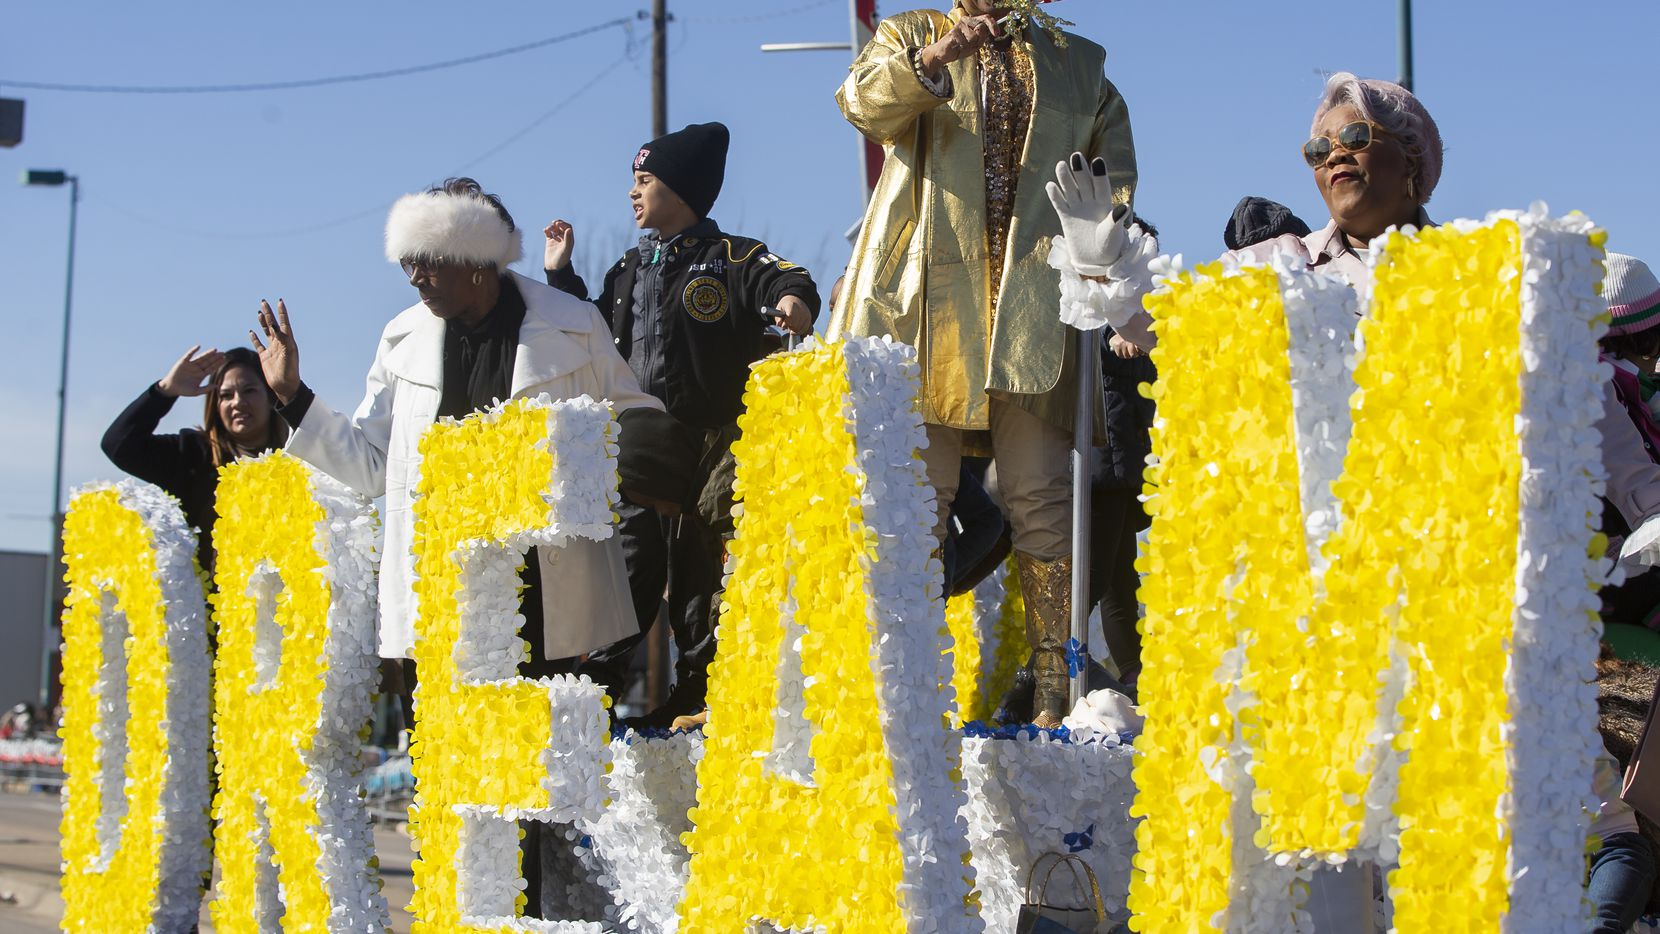 This file photo shows the MLK Board waving as they make their way down Martin Luther King Jr. Blvd during the 38th annual MLK Parade on Jan. 20, 2020 in Dallas.